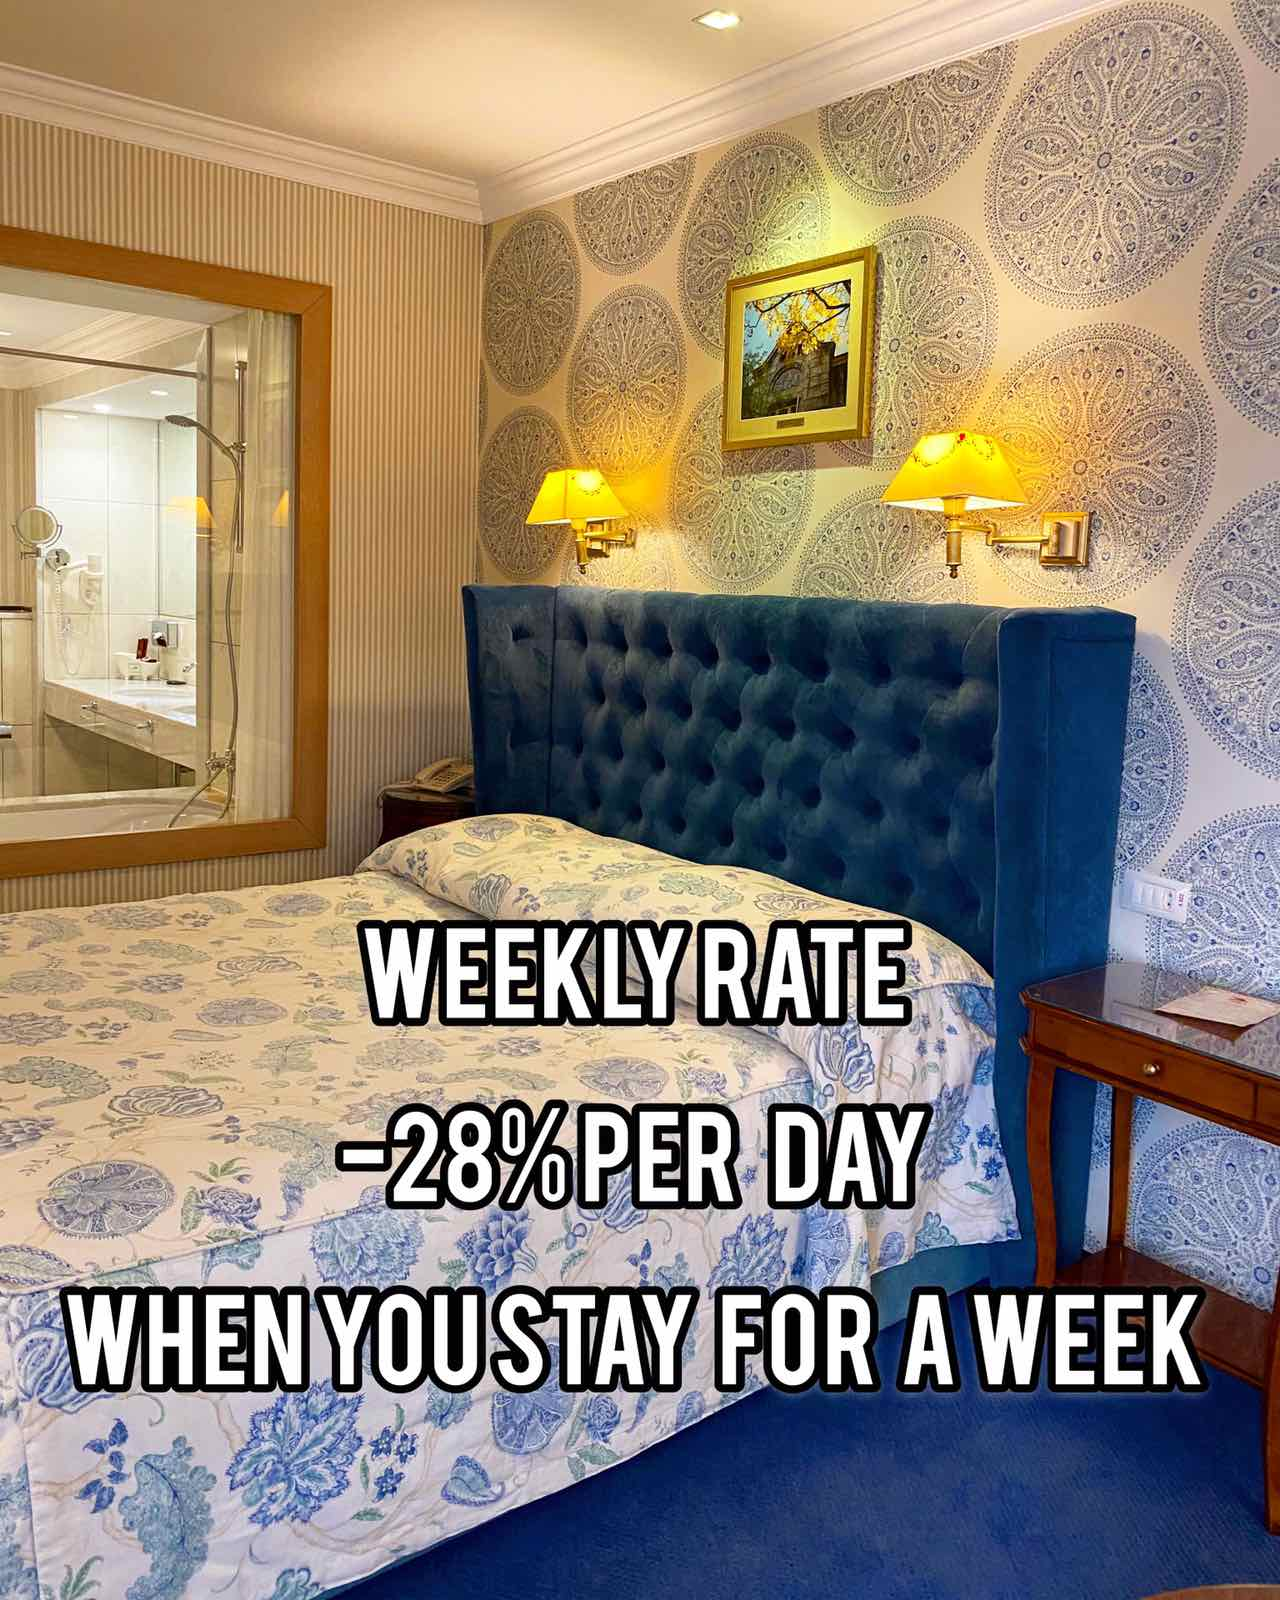 Save up to 28% per night  *WEEKLY RATE